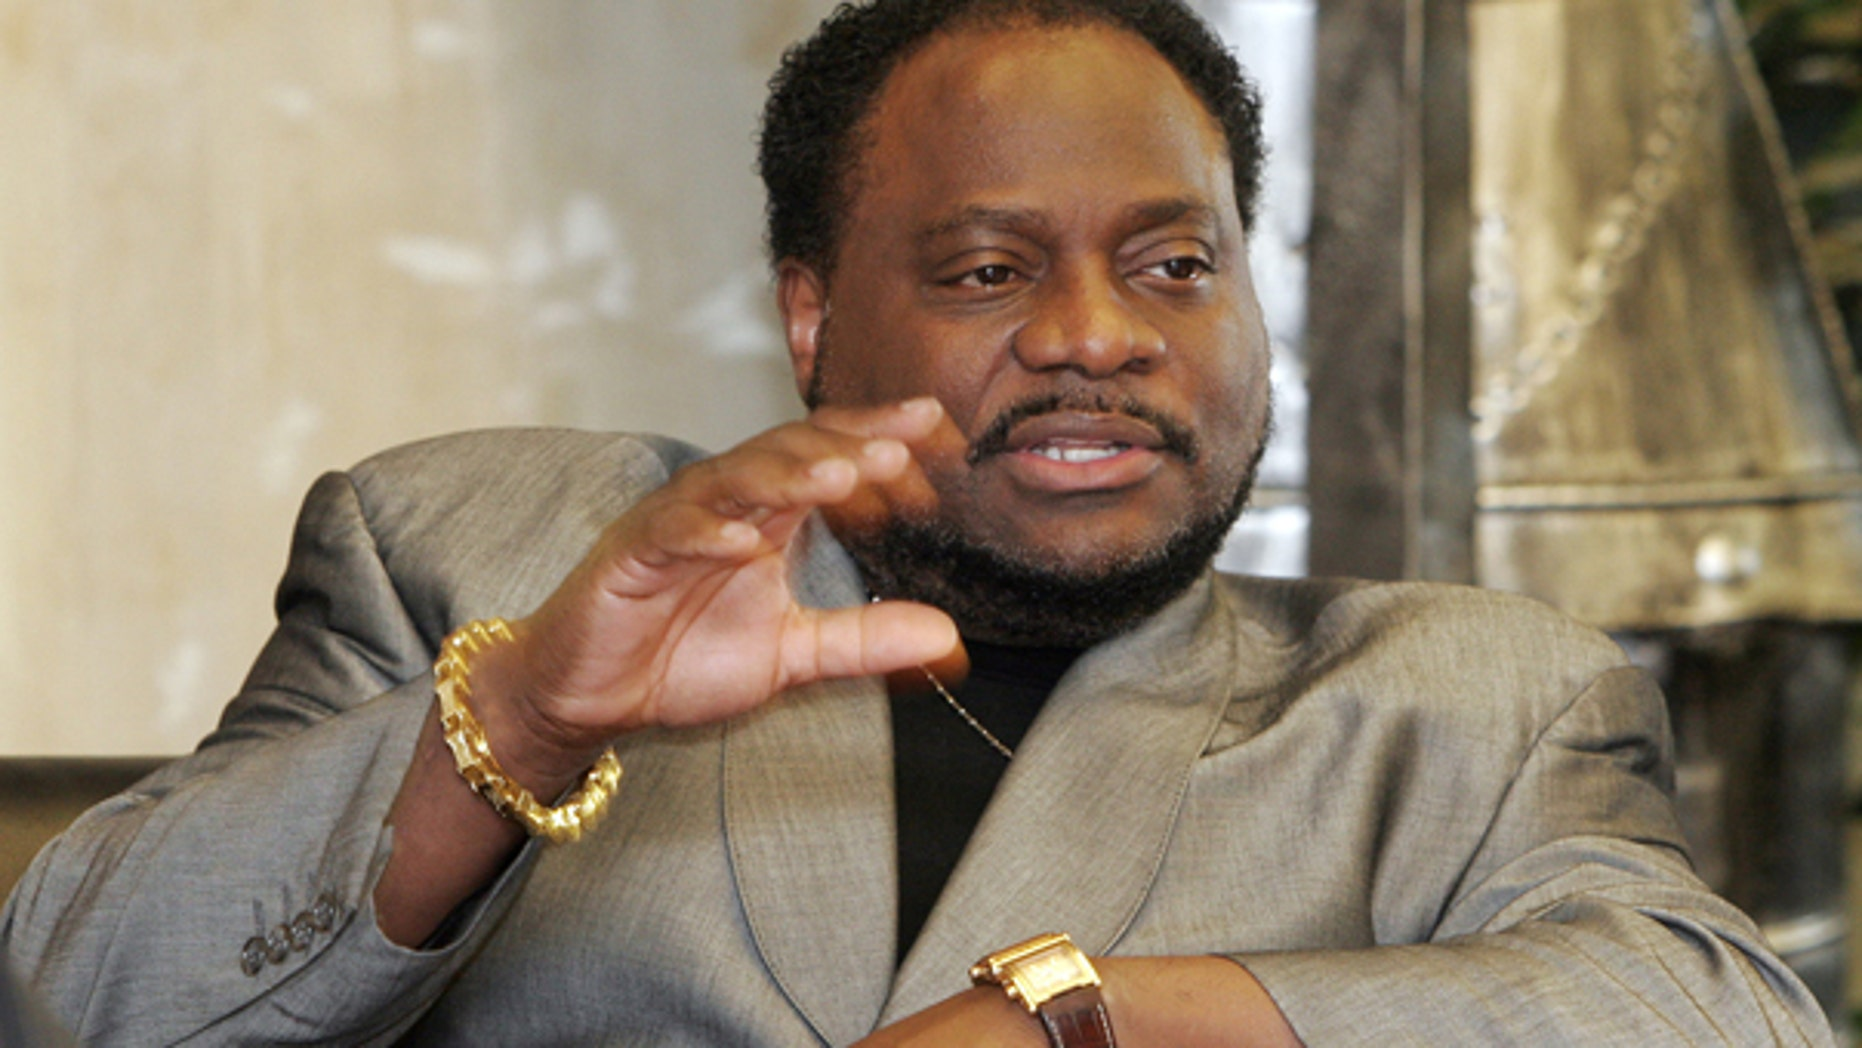 In this Jan. 18 2007 file photo, Bishop Eddie Long, of the New Birth Missionary Baptist Church, in Lithonia, Ga. gestures during an interview in Lithonia. Several men have filed a lawsuit accusing Long of exploiting his role as pastor of an Atlanta-area megachurch to coerce them into sexual relationships.